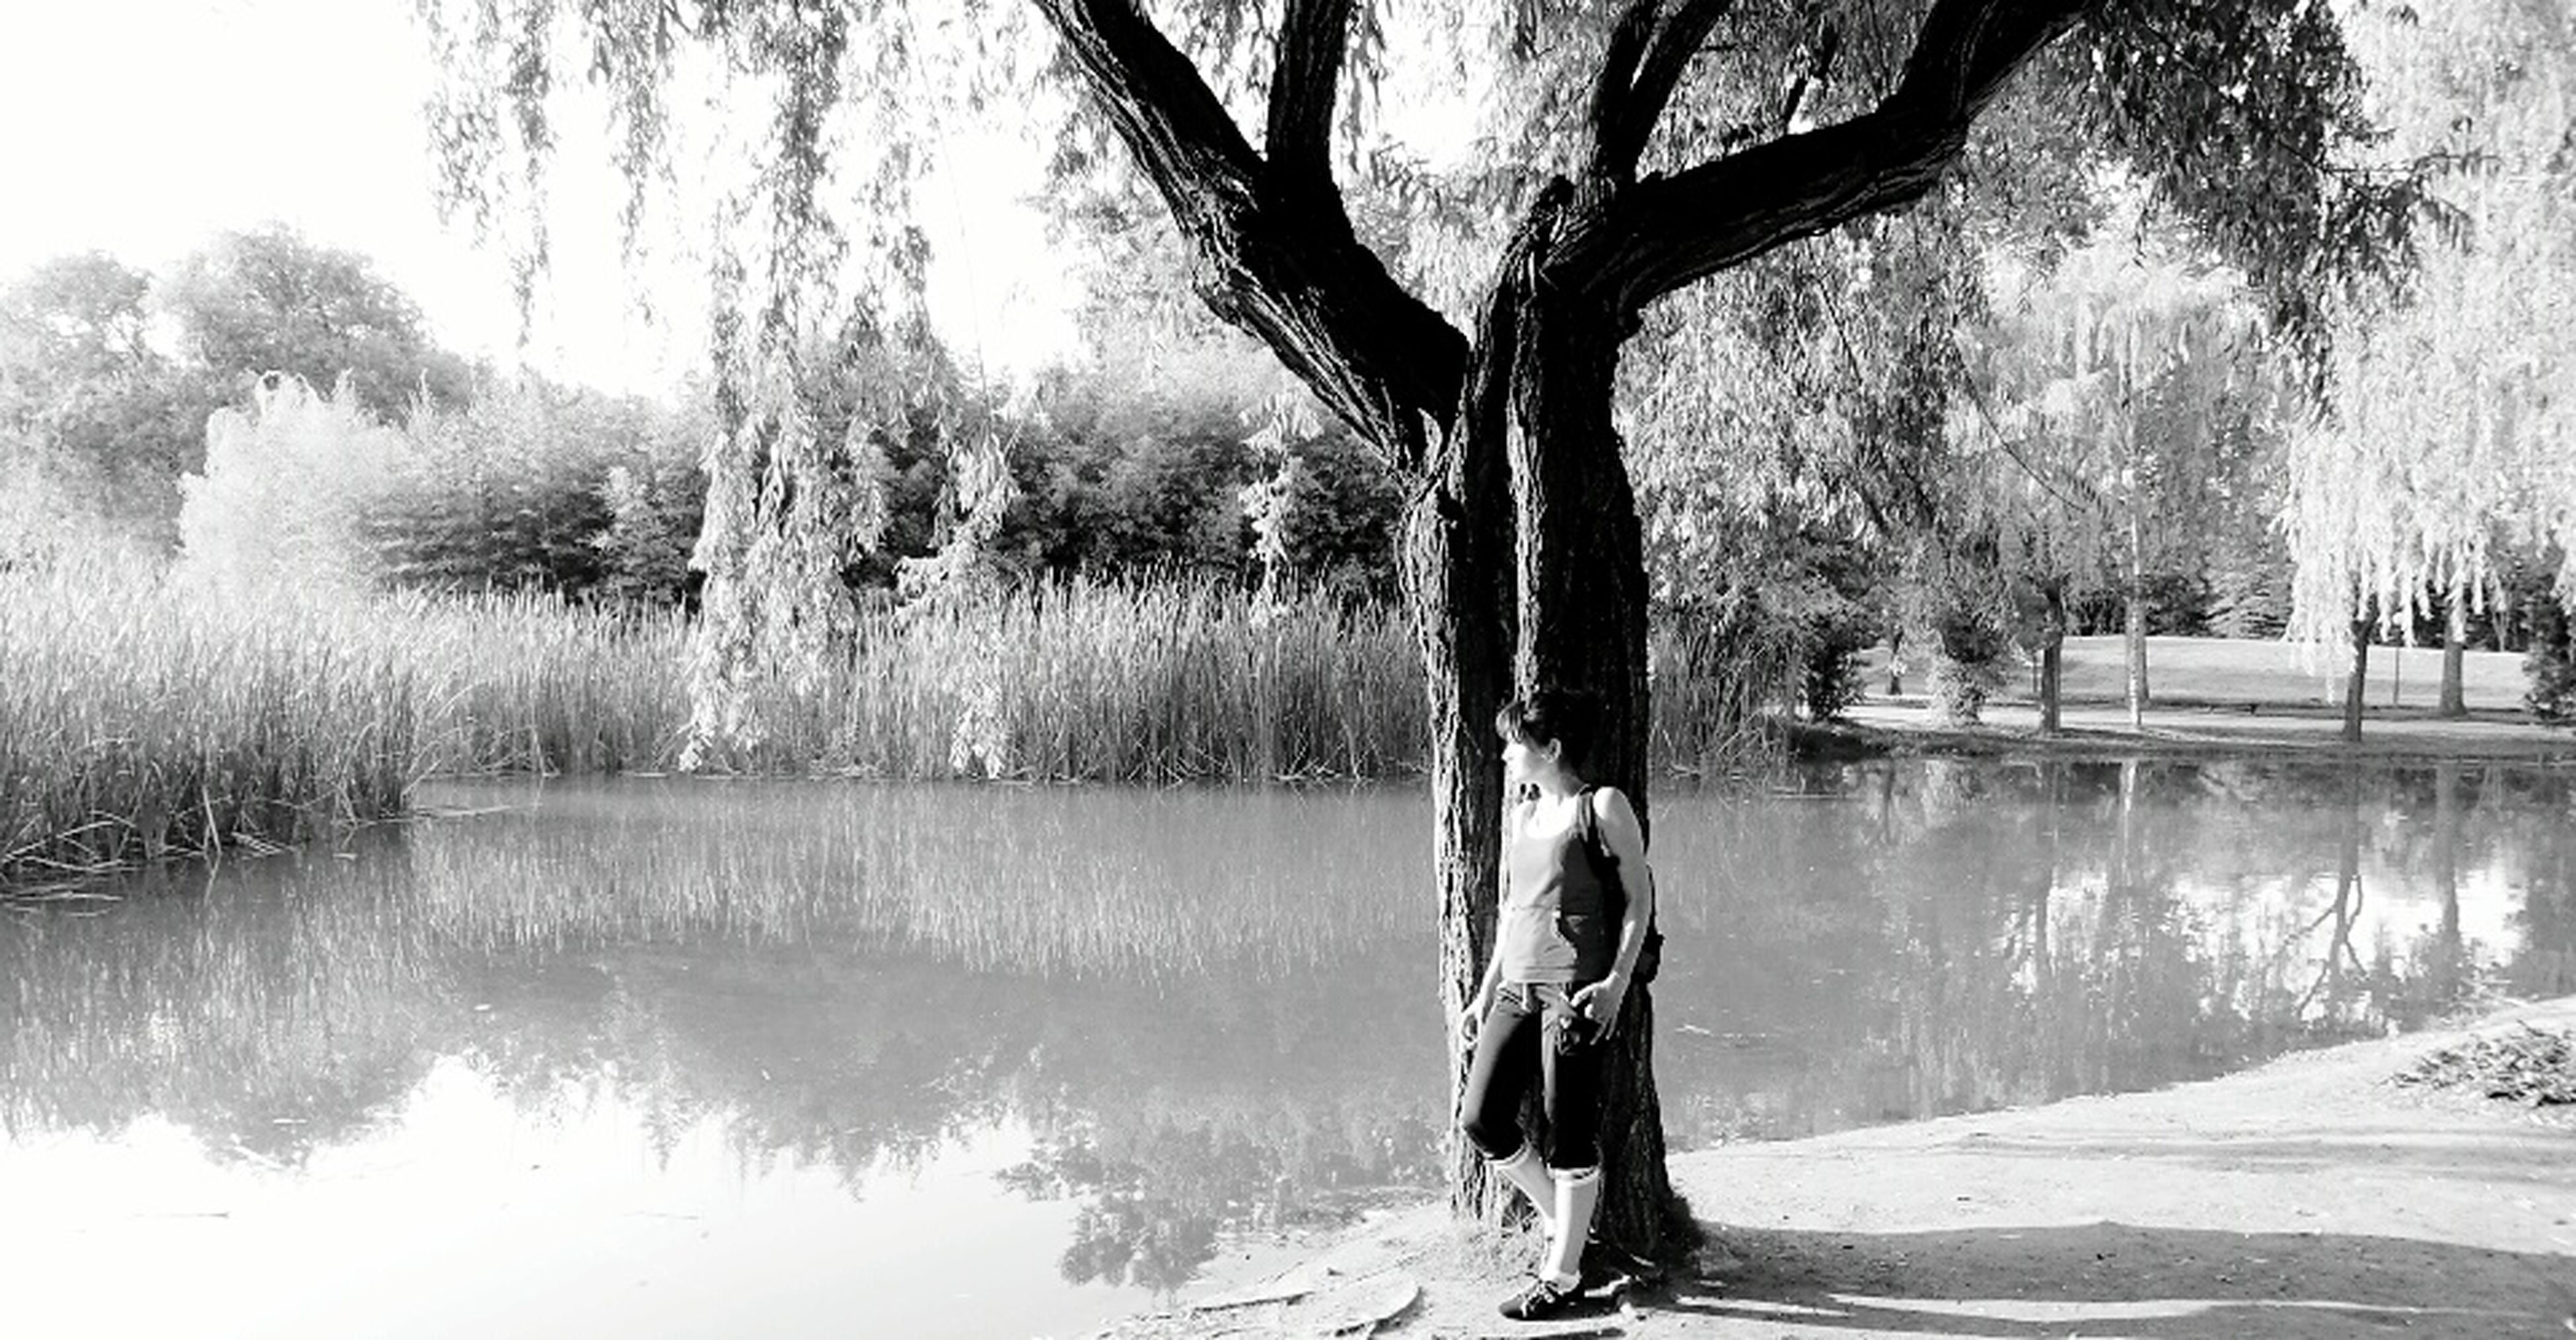 tree, water, tranquility, lake, tree trunk, tranquil scene, nature, reflection, bare tree, branch, growth, beauty in nature, river, scenics, clear sky, day, outdoors, no people, grass, lakeshore